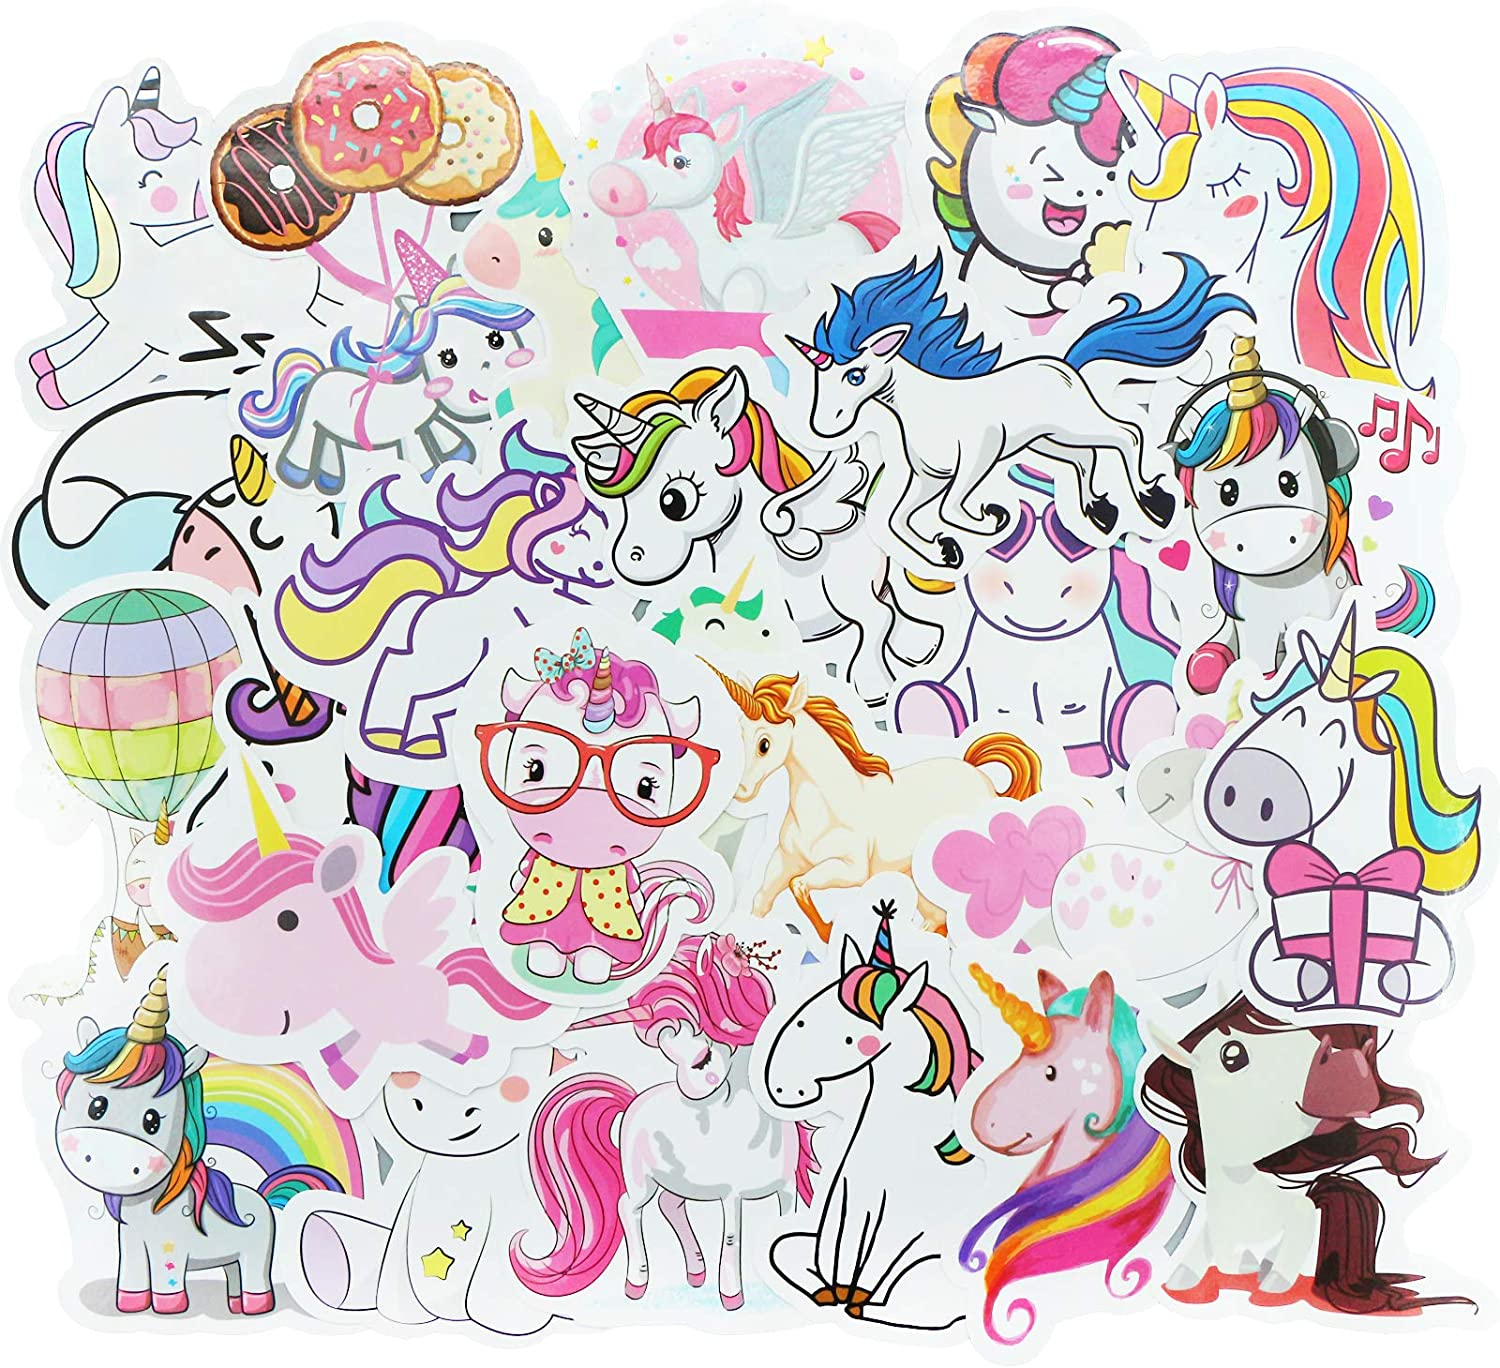 YAMIOW Laptop Stickers, Waterproof Sticker Packs for Water Bottle, Skateboard, Luggage, Cute Vinyl Graffiti Decal for Adult, Teens (50 pcs for Unicorn Style)